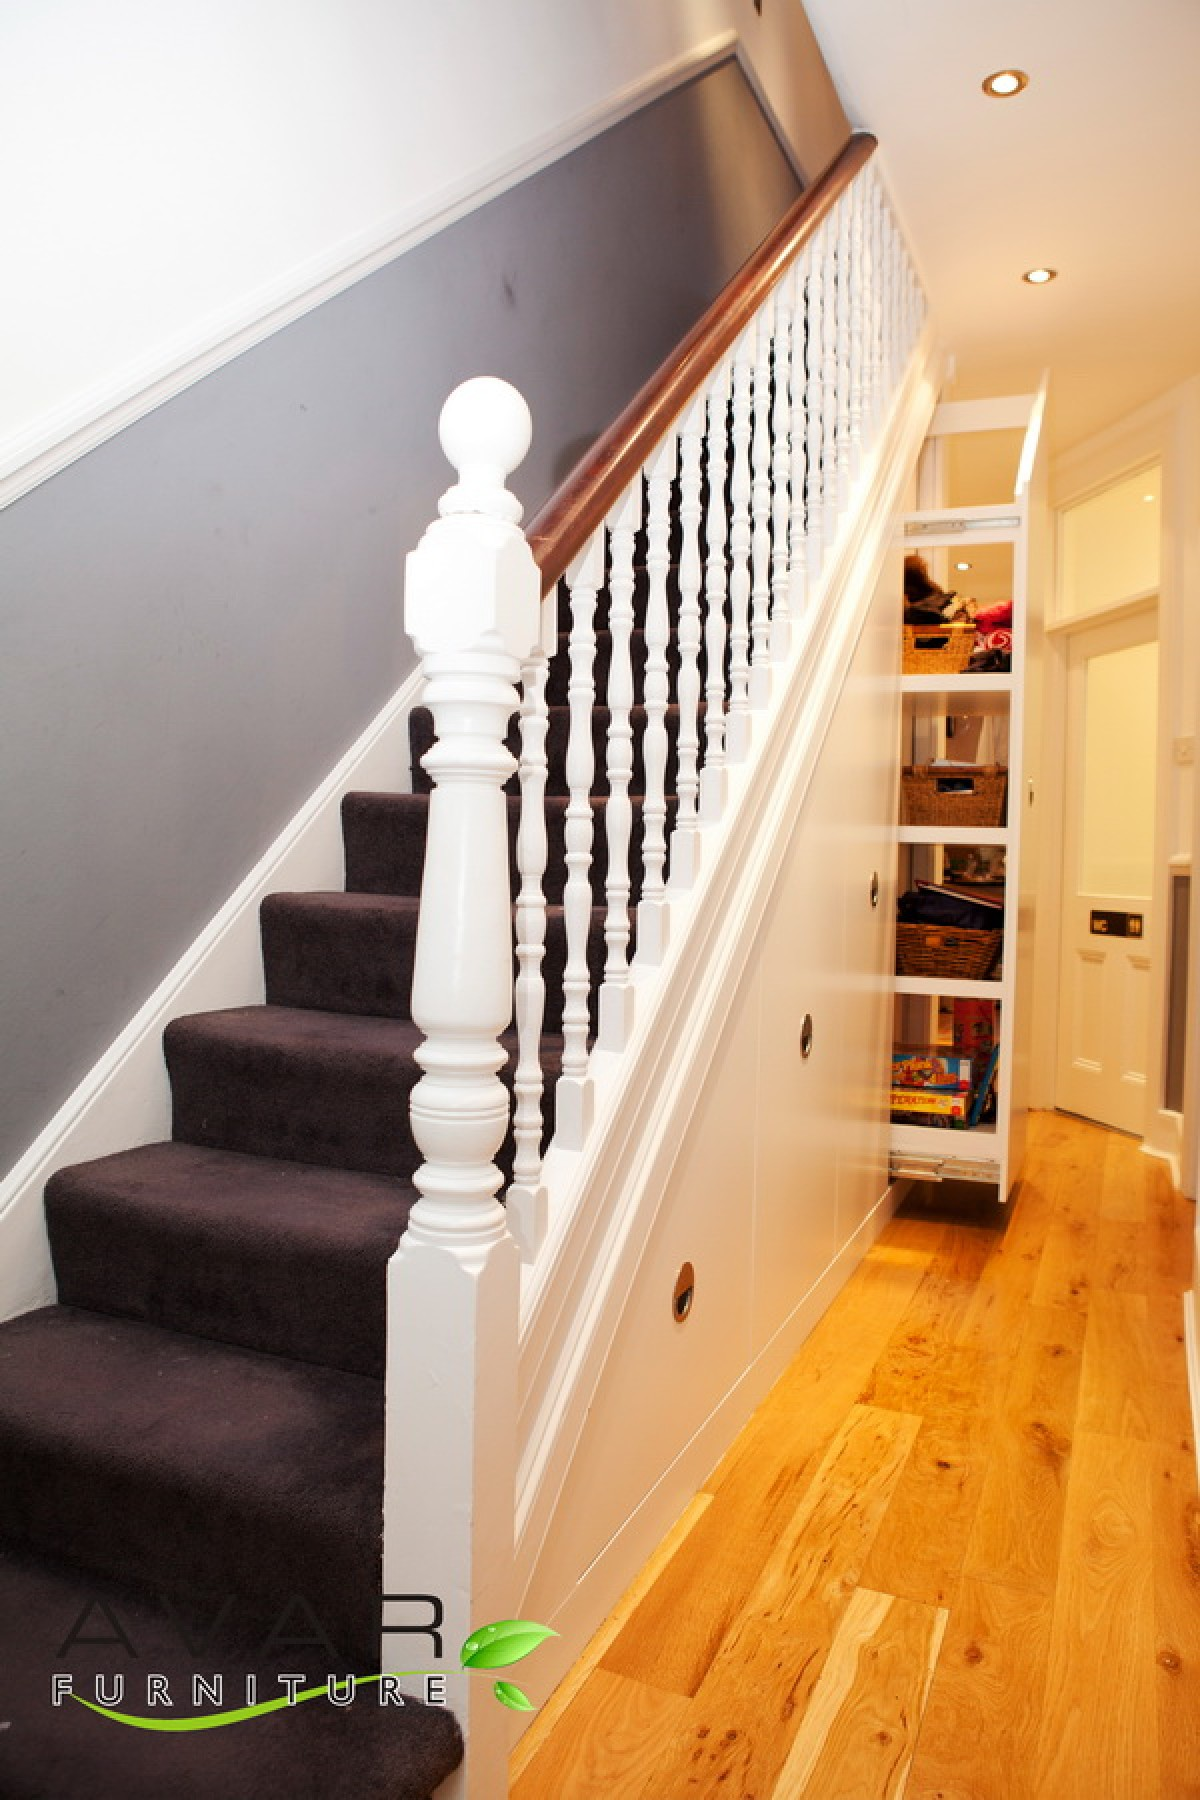 ƸӜƷ Under stairs storage ideas / Gallery 9 | North London, UK ...